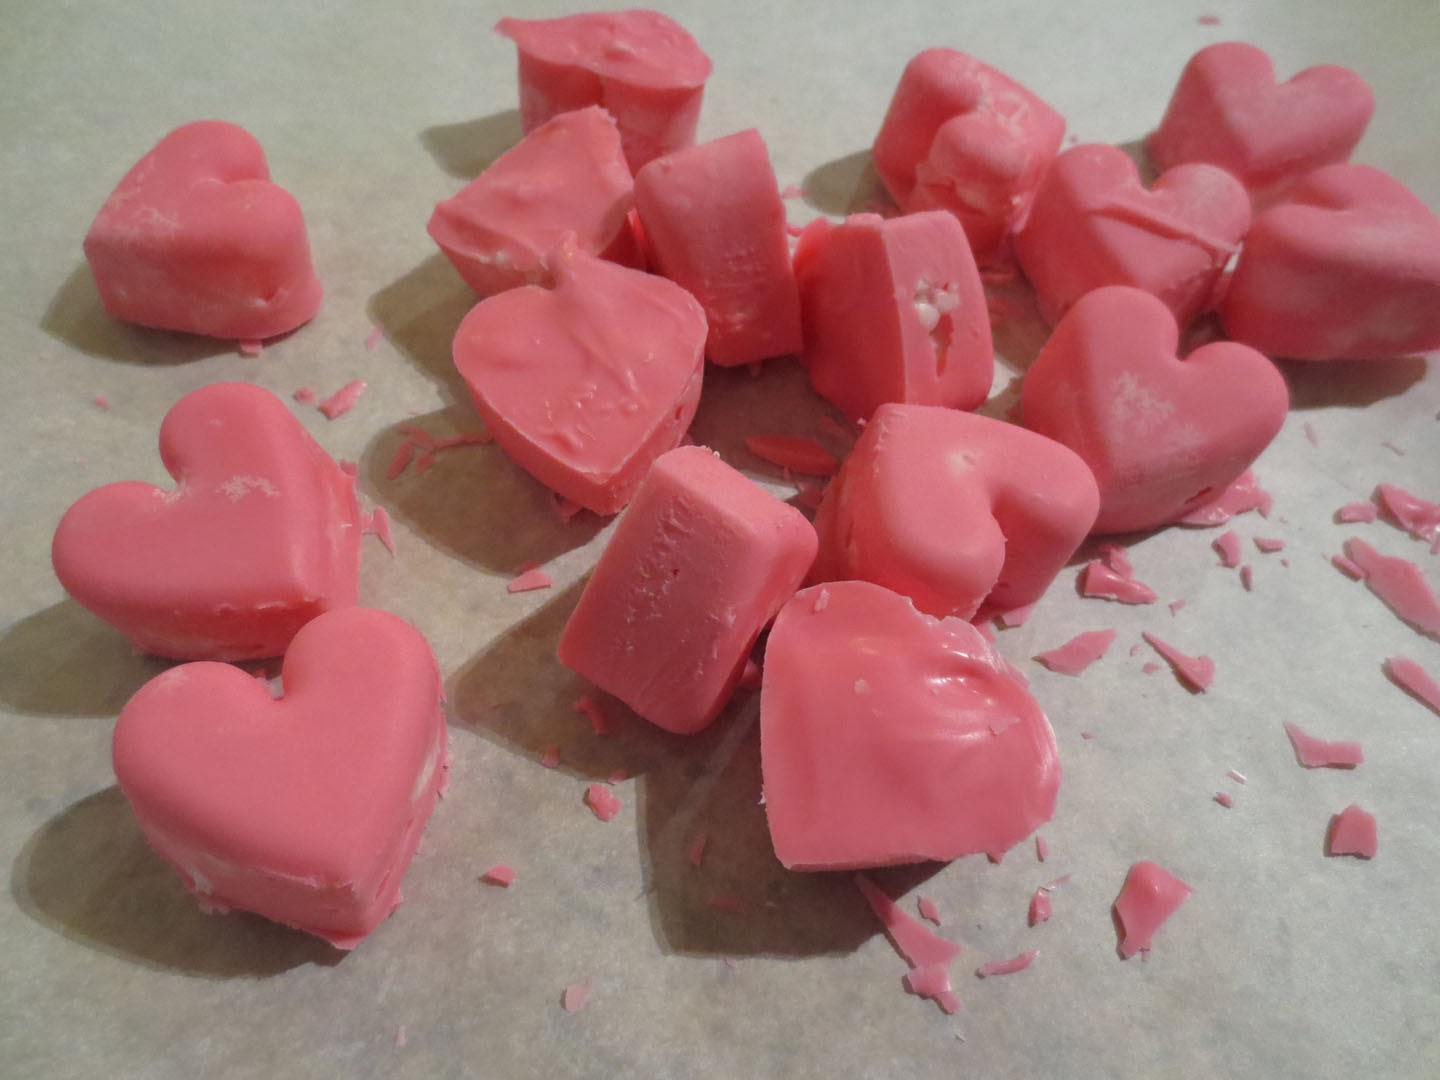 pink chocolate candy hearts